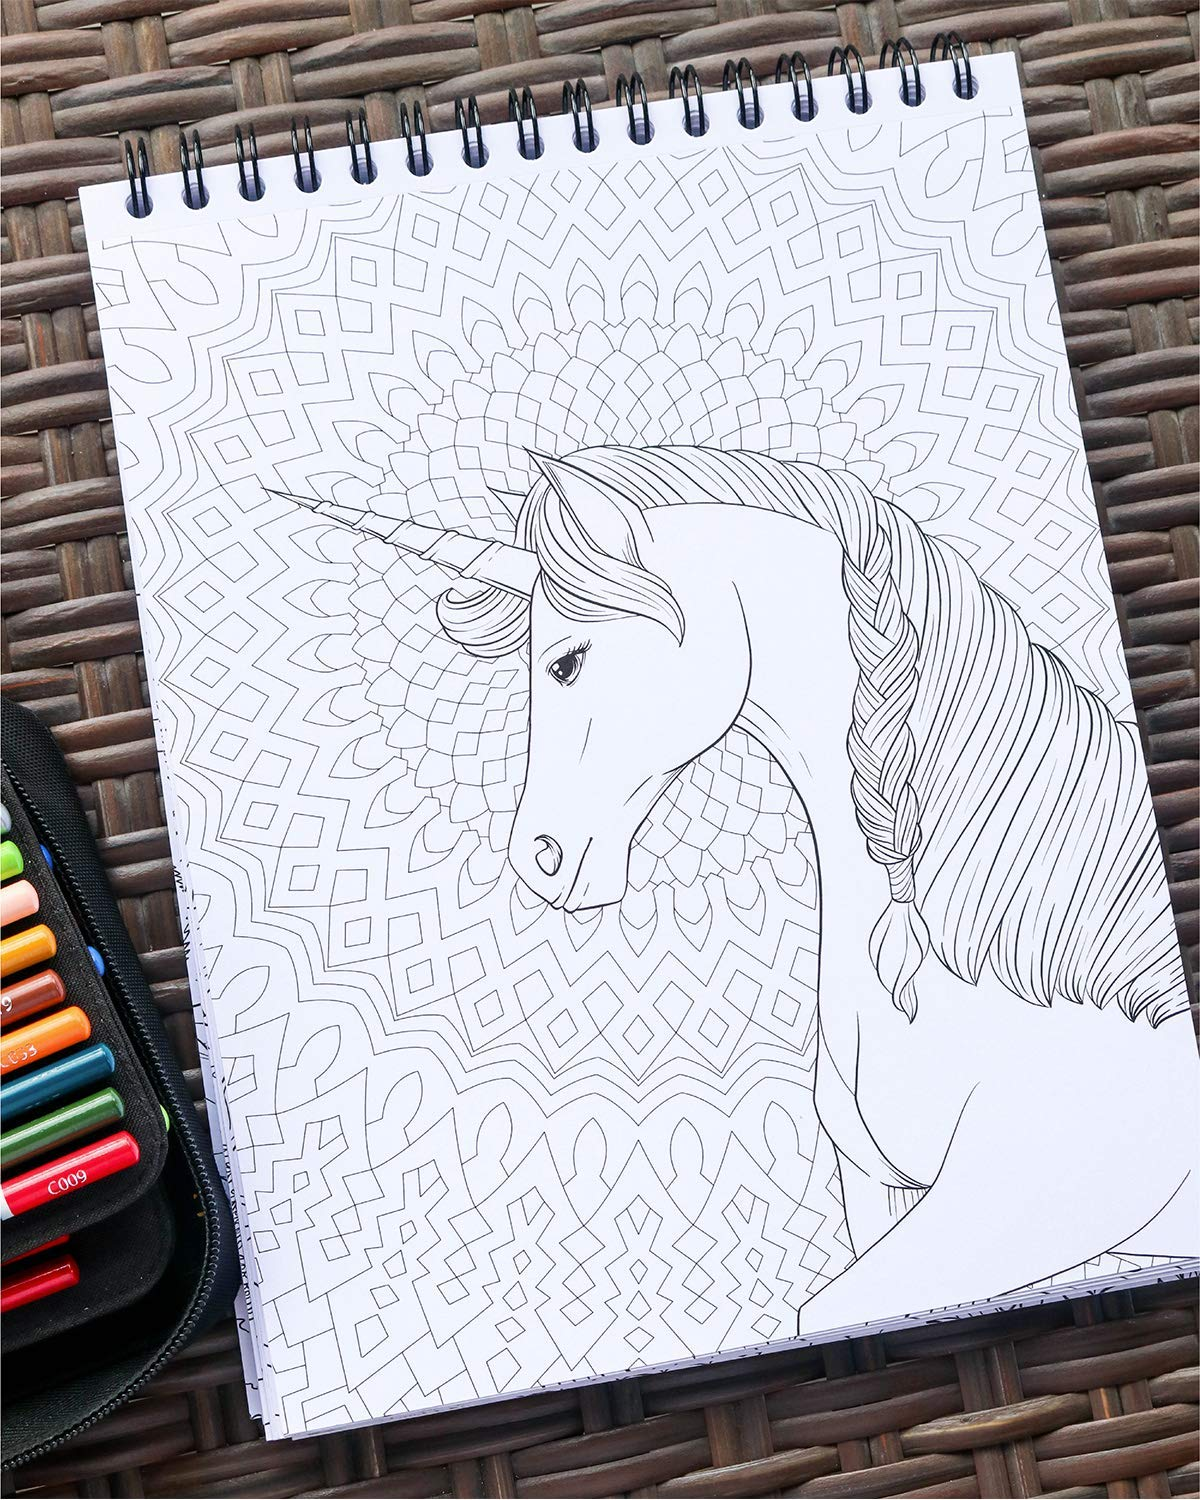 ColorIt Colorful Unicorns Adult Coloring Book - 50 Single-Sided Pages, Thick Smooth Paper, Lay Flat Hardback Covers… 7